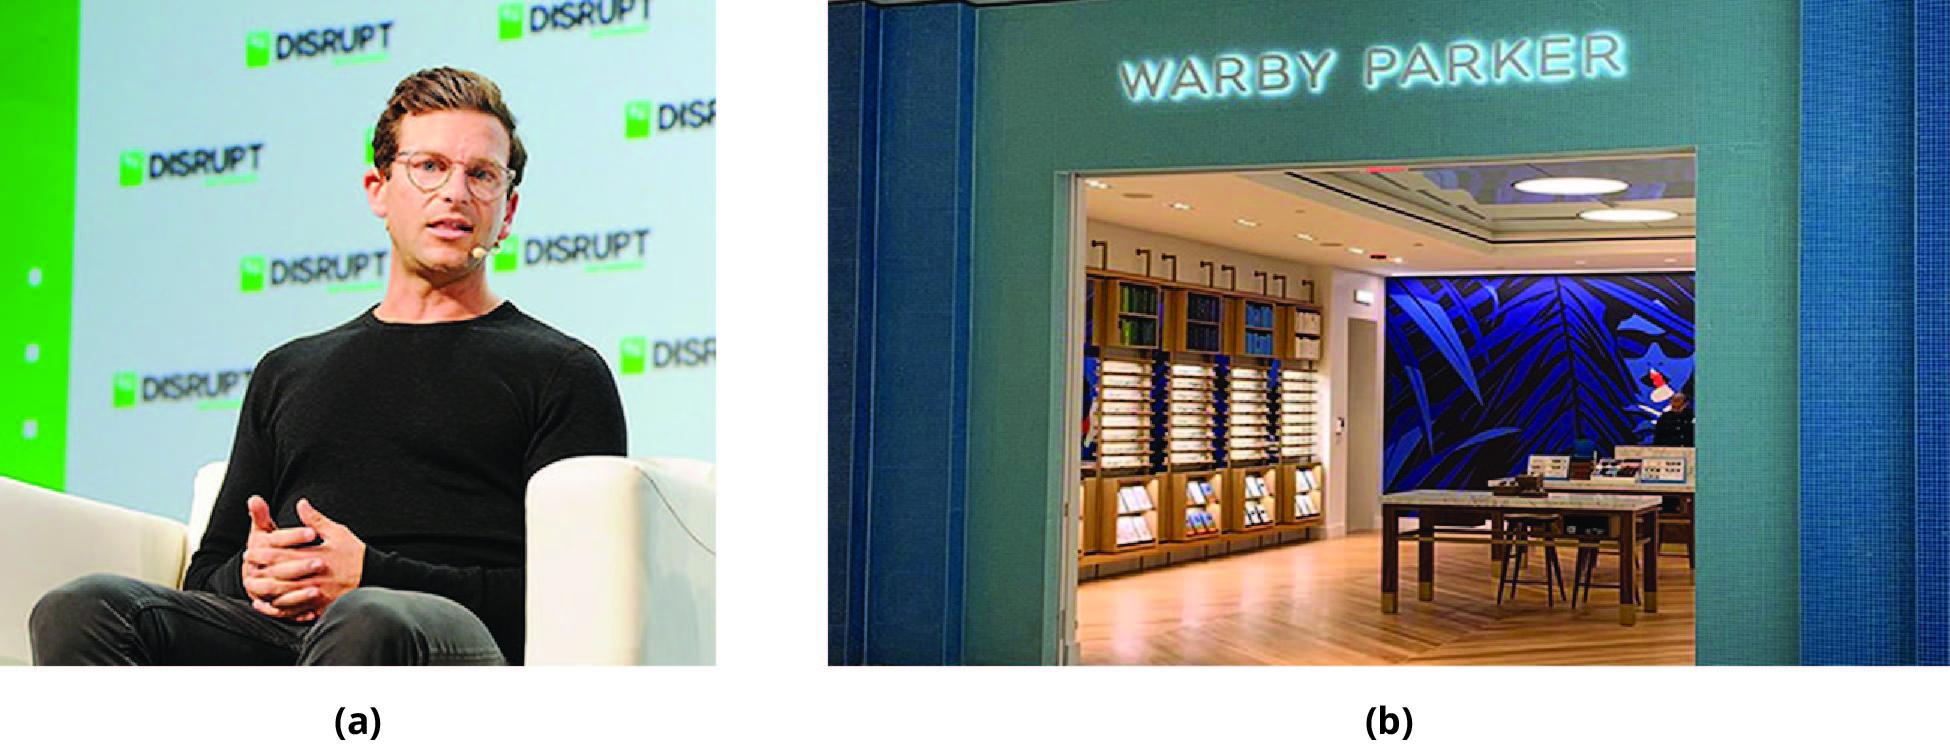 (a) Photo of Dave Gilboa. (b) Photo of a Warby Parker retail store.